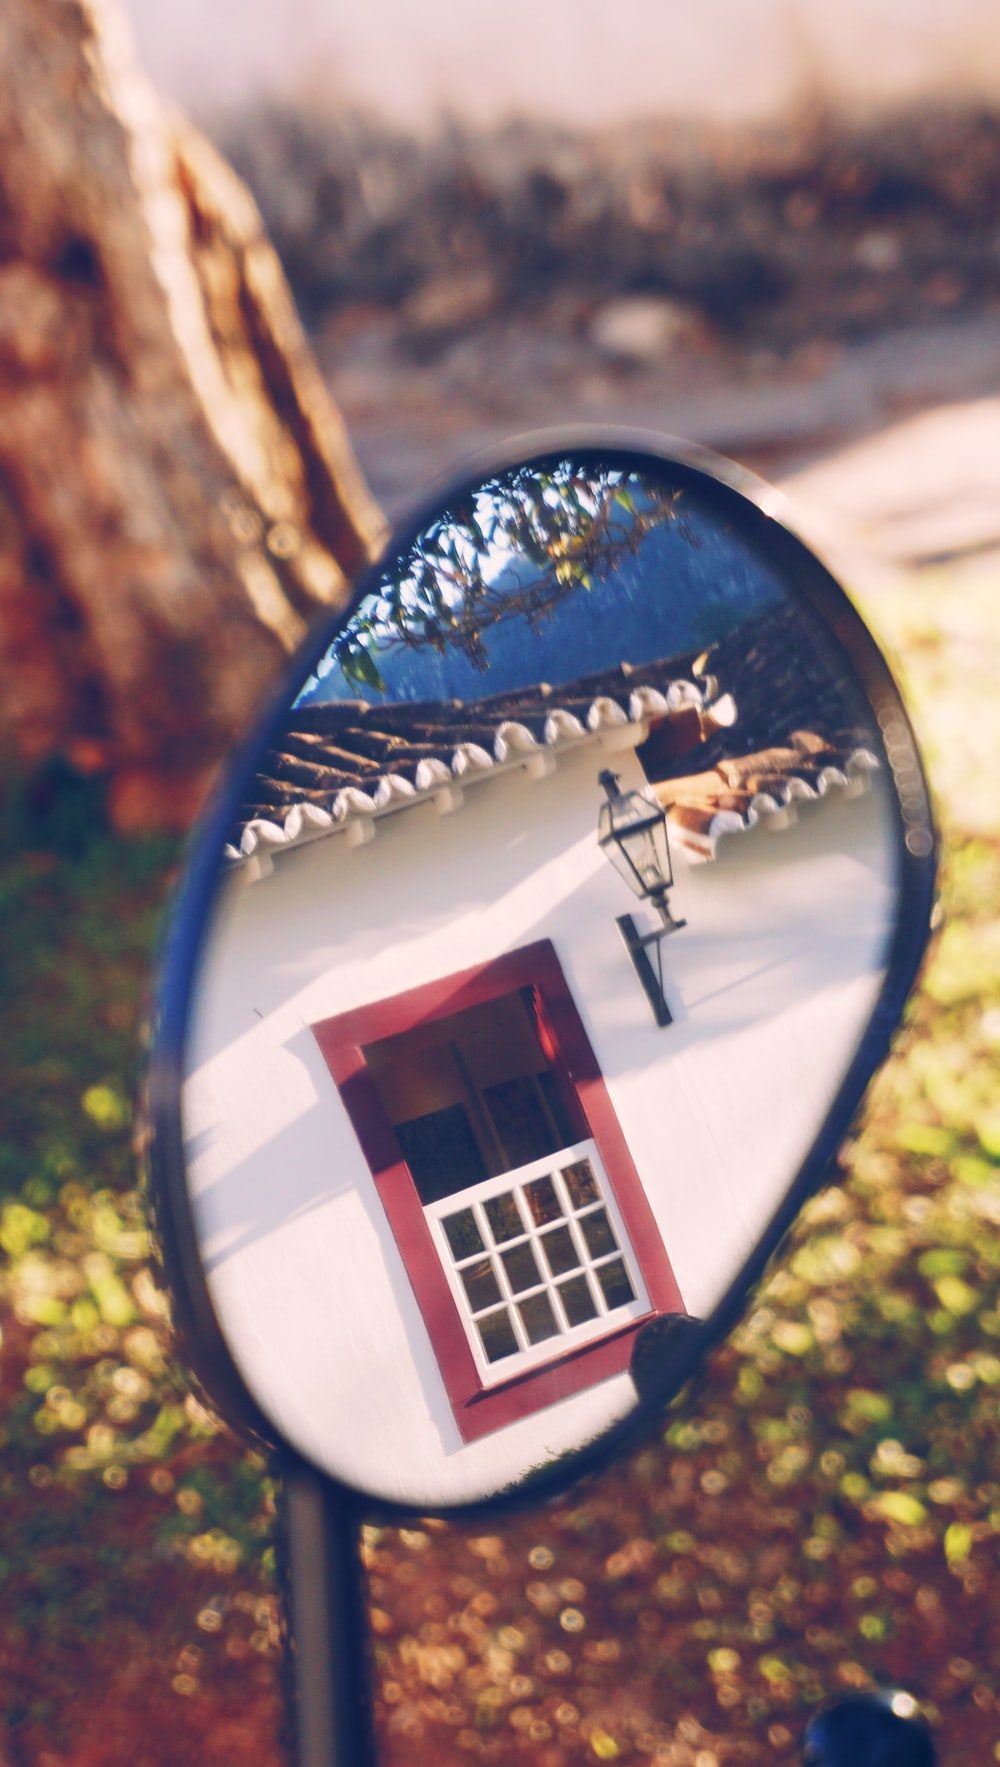 brown and white window reflection and side mirror